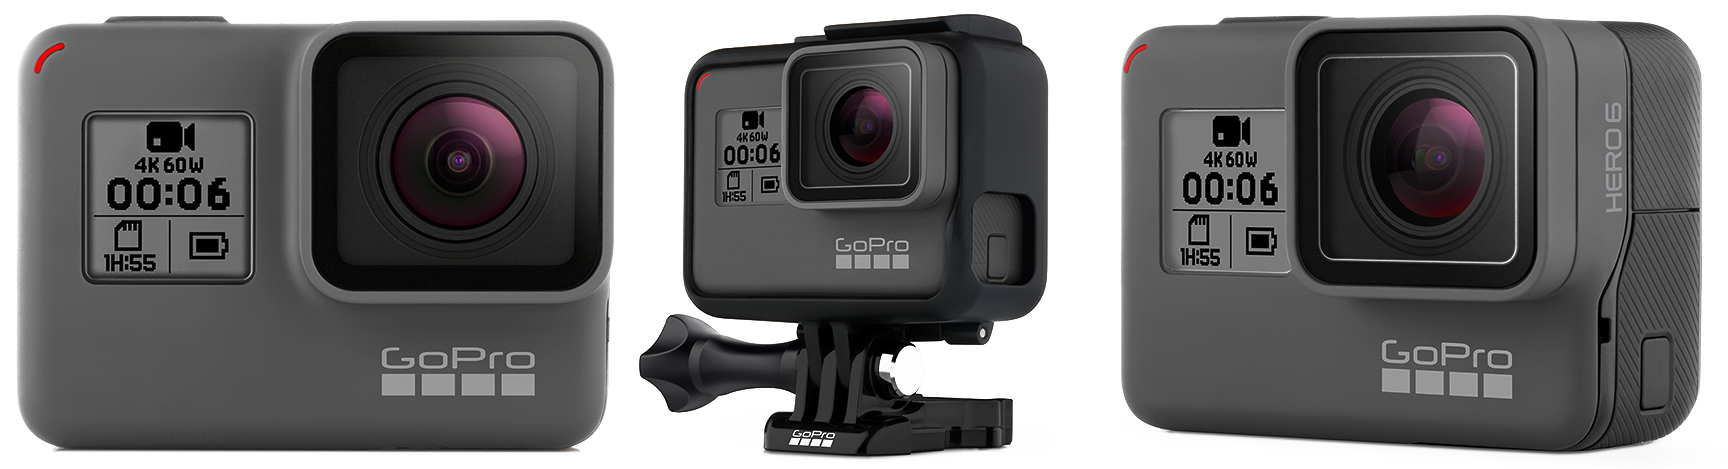 Go Pro Hero6 Featured